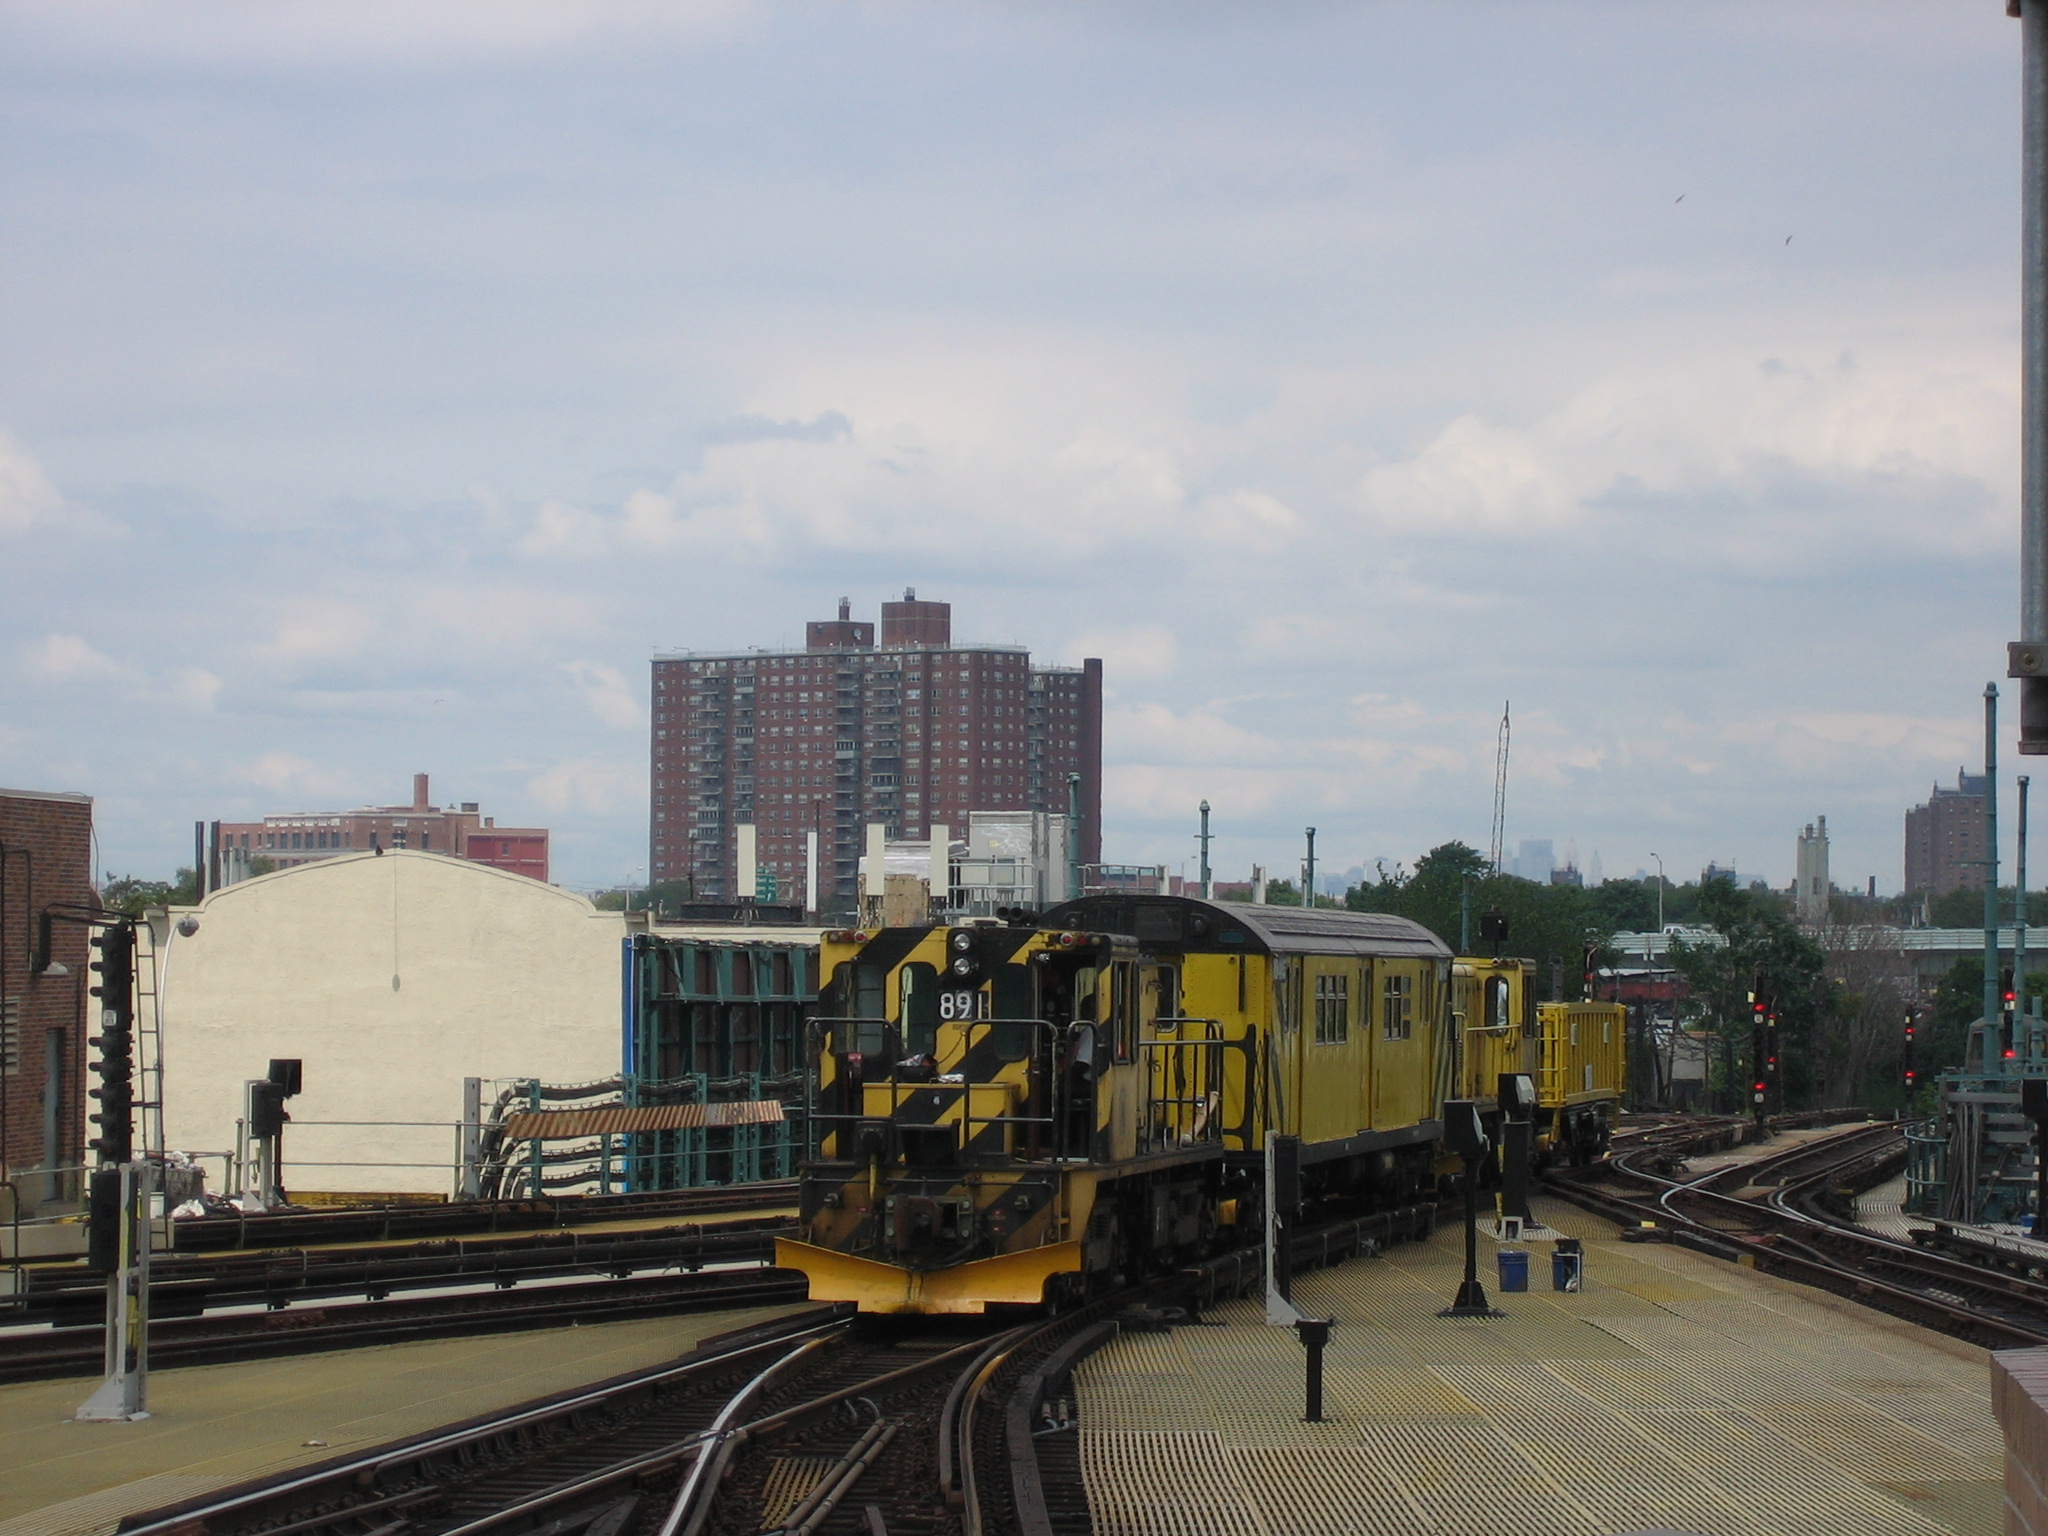 (746k, 2048x1536)<br><b>Country:</b> United States<br><b>City:</b> New York<br><b>System:</b> New York City Transit<br><b>Location:</b> Coney Island/Stillwell Avenue<br><b>Route:</b> Work Service<br><b>Car:</b> R-77 Locomotive  891 <br><b>Photo by:</b> Michael Hodurski<br><b>Date:</b> 8/4/2006<br><b>Viewed (this week/total):</b> 0 / 1502